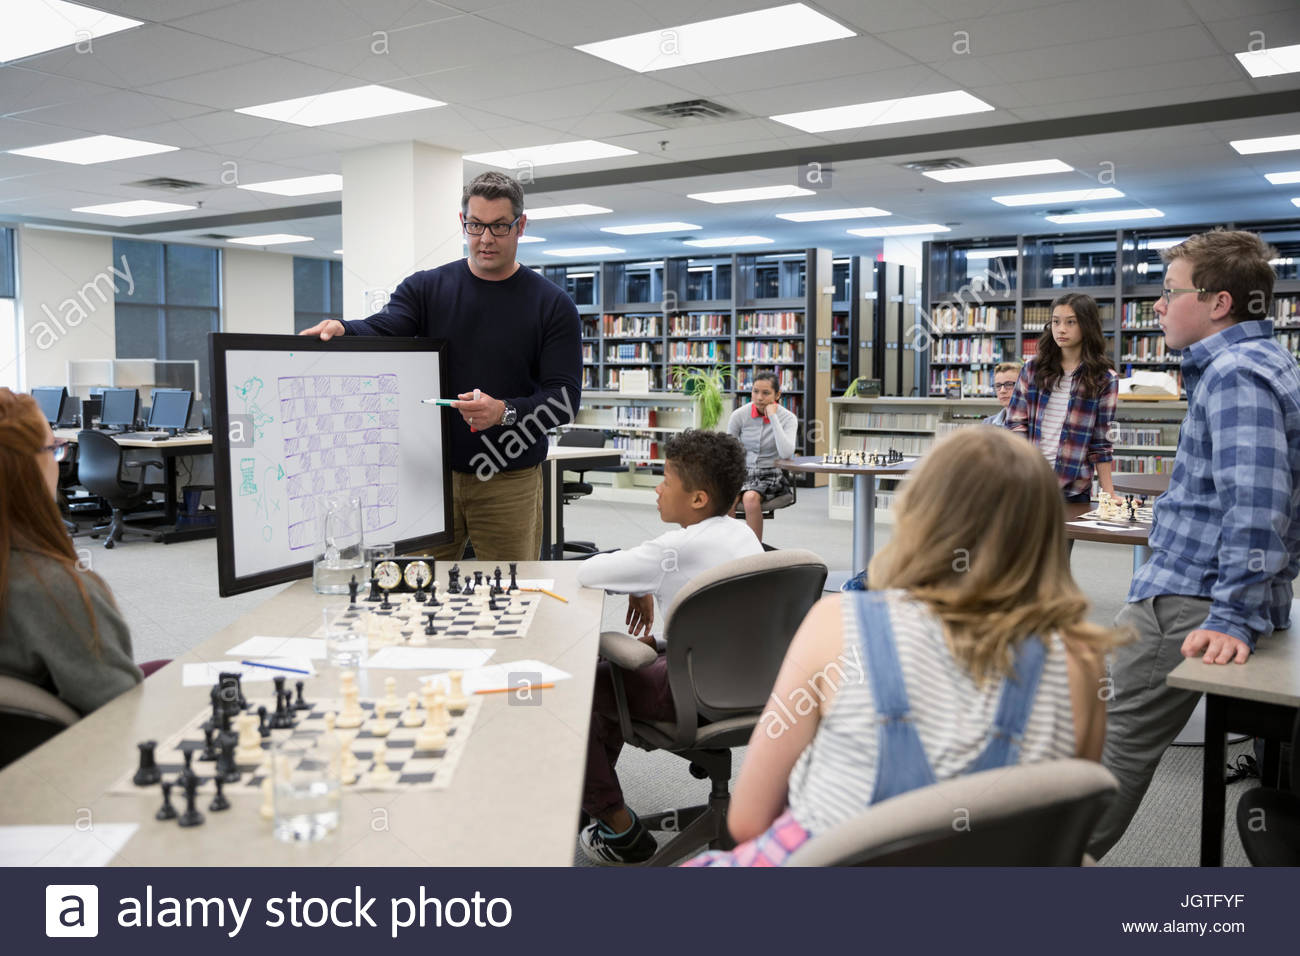 Teacher with whiteboard leading chess club lesson in library - Stock Image